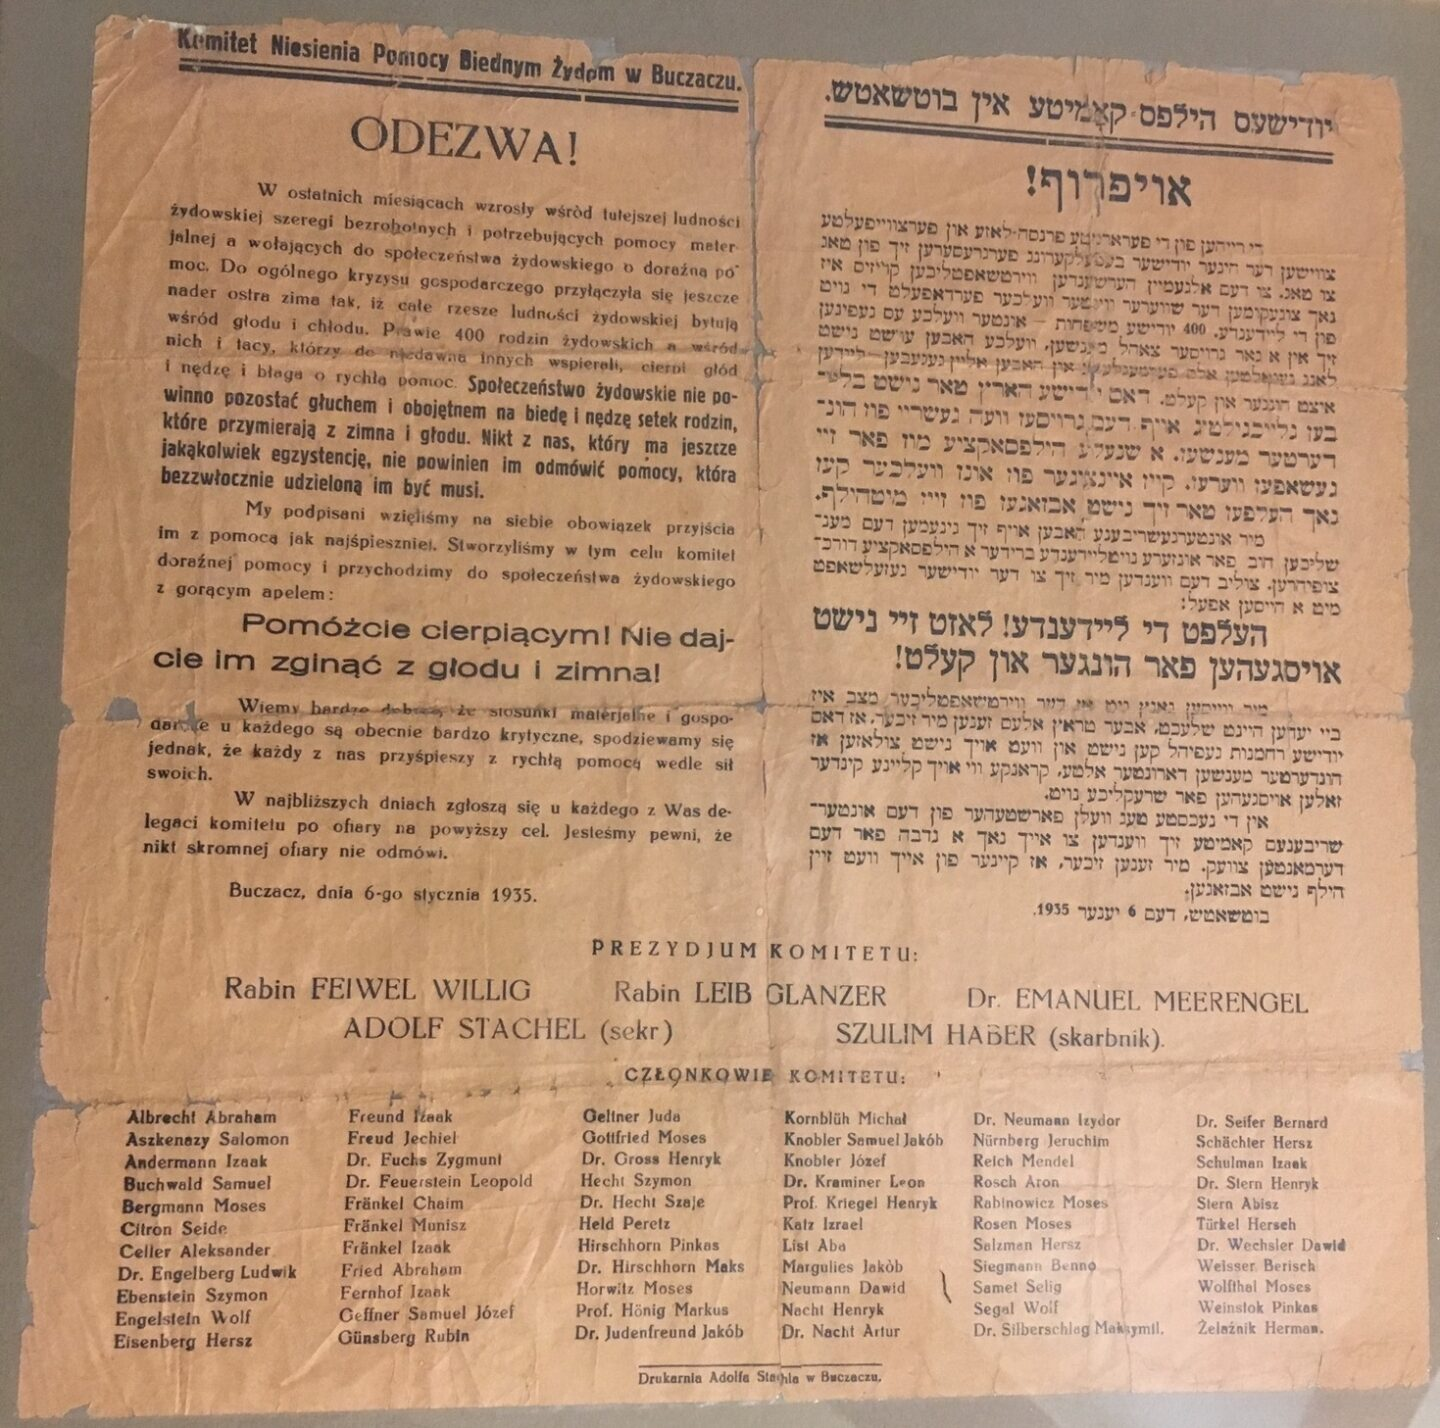 """<p><em>An appeal published by the Jewish Relief Committee in Buczacz, Poland, <span class=""""numbers"""">1935</span>, in Polish and Yiddish; English translation below. From the private collection of Maurice&nbsp;Wolfthal.</em></p><p><em><br></em></p>"""